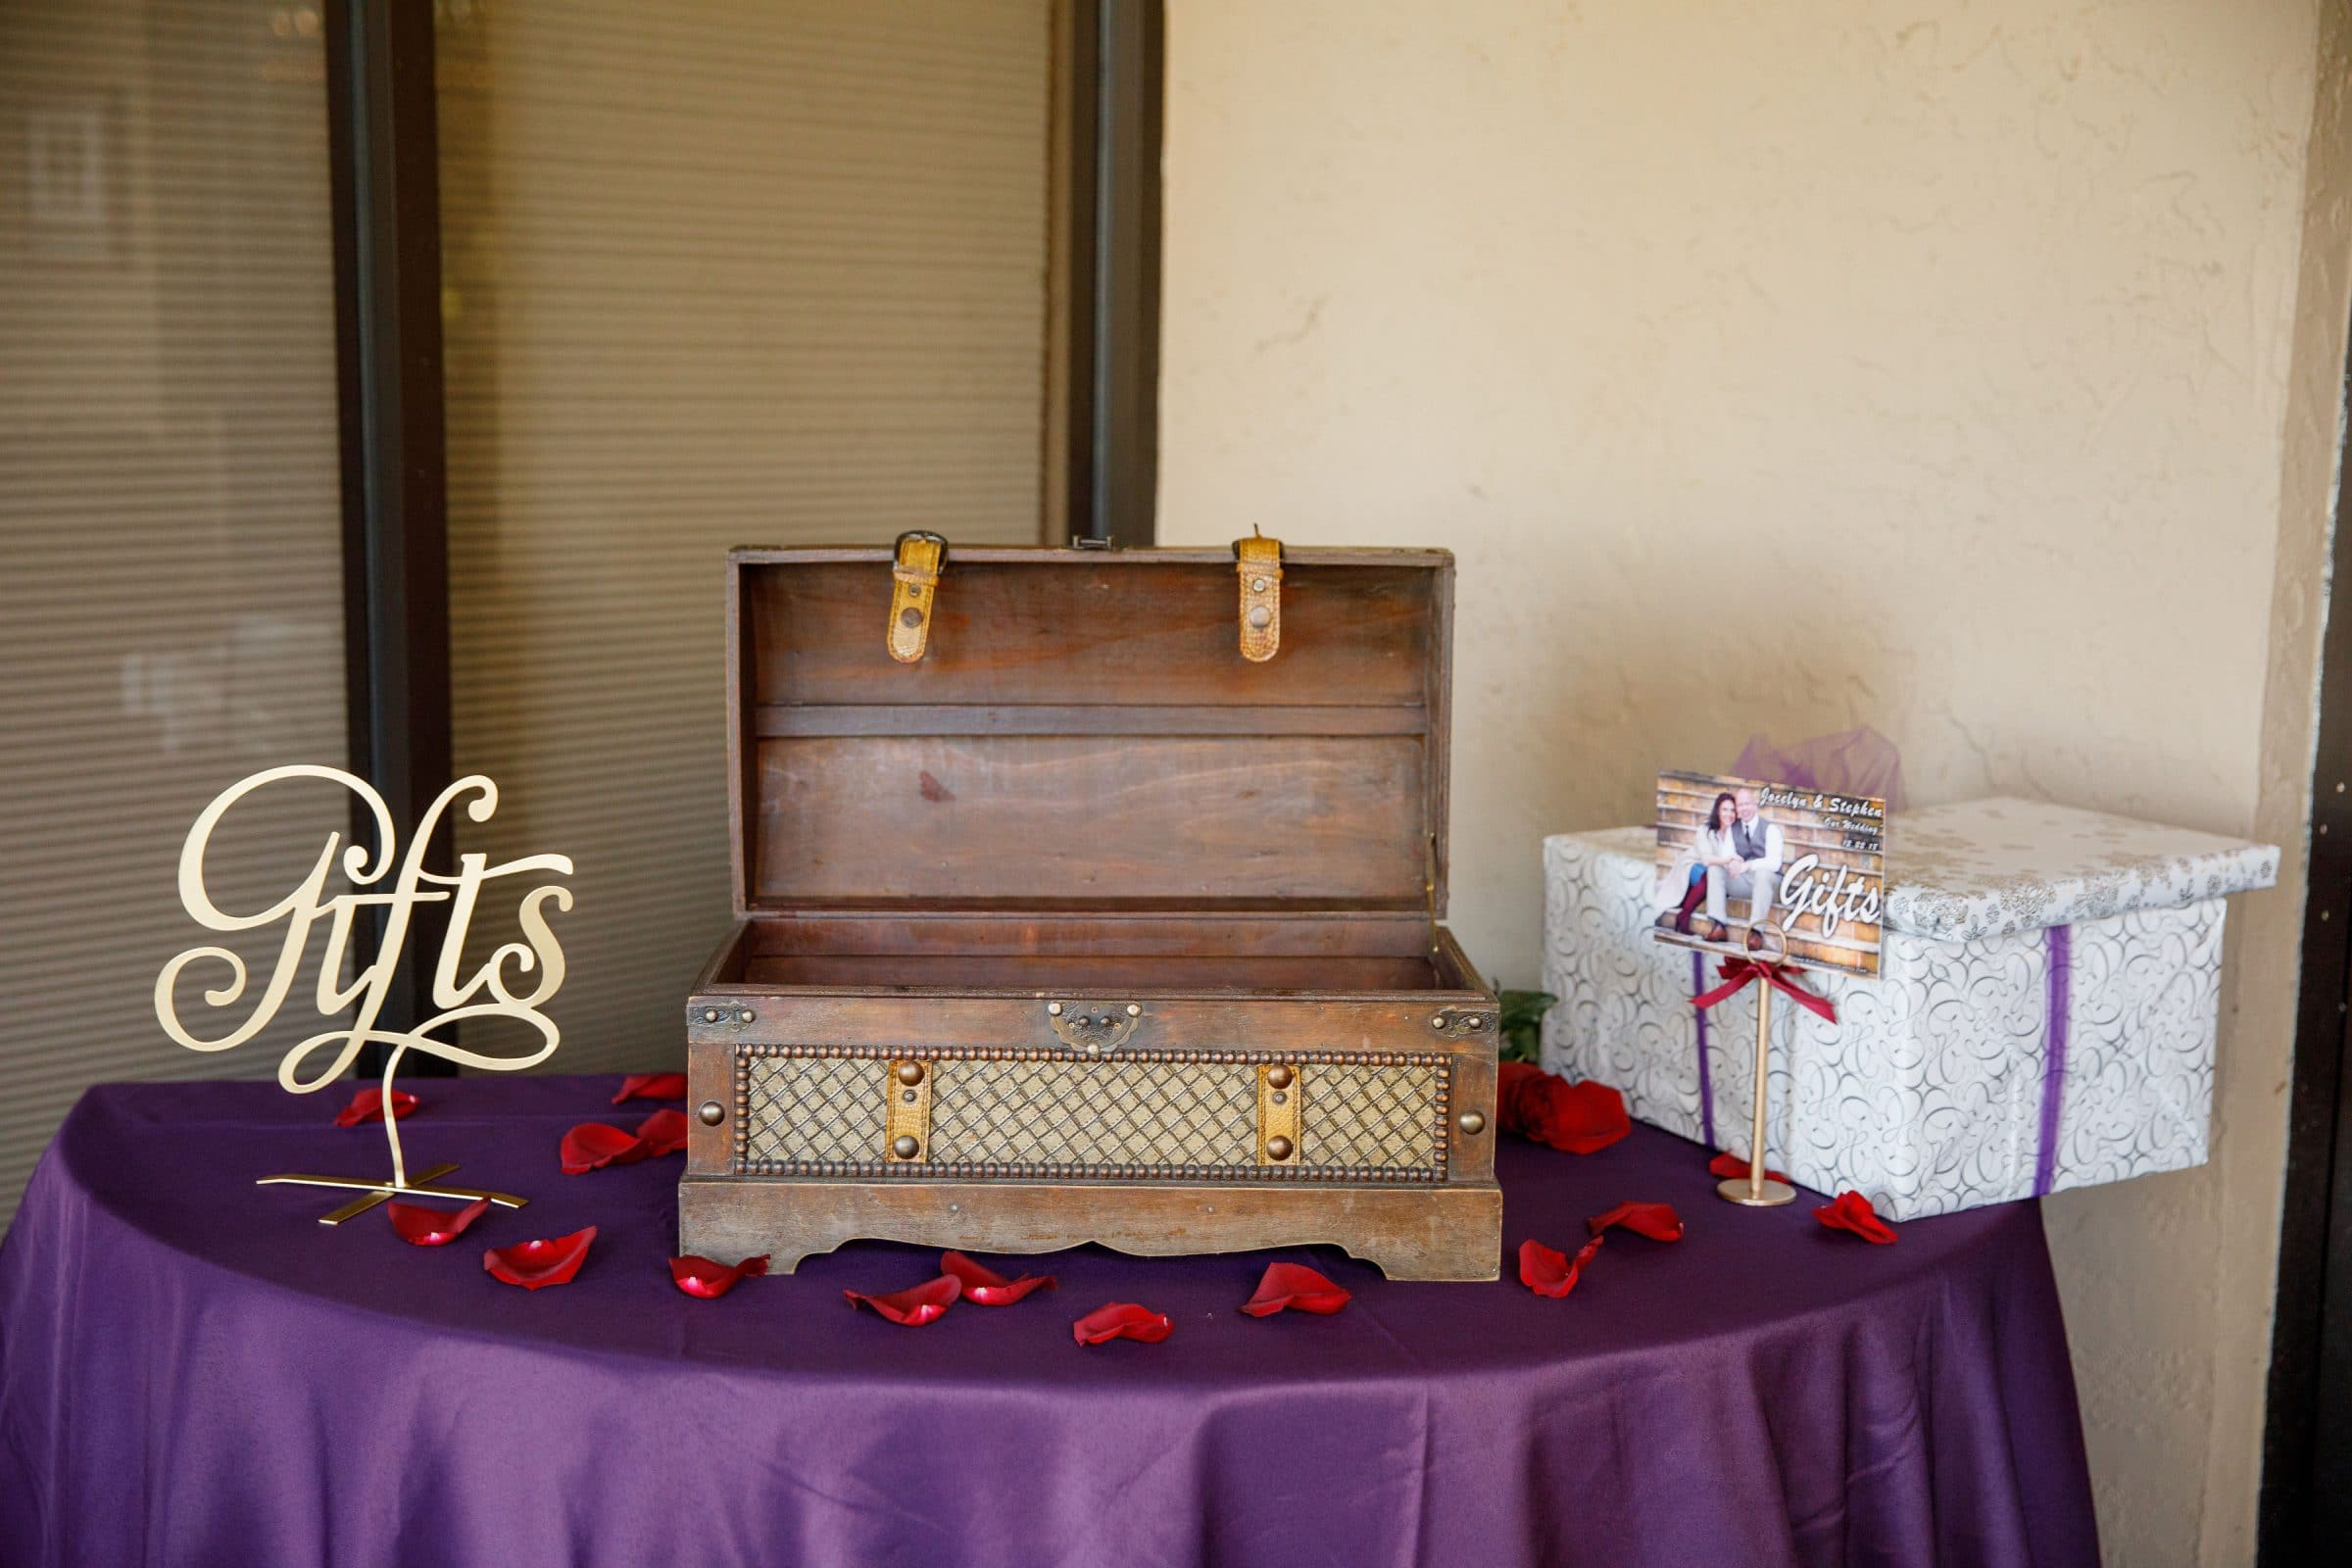 Table with purple linen and red rose petals with gift box